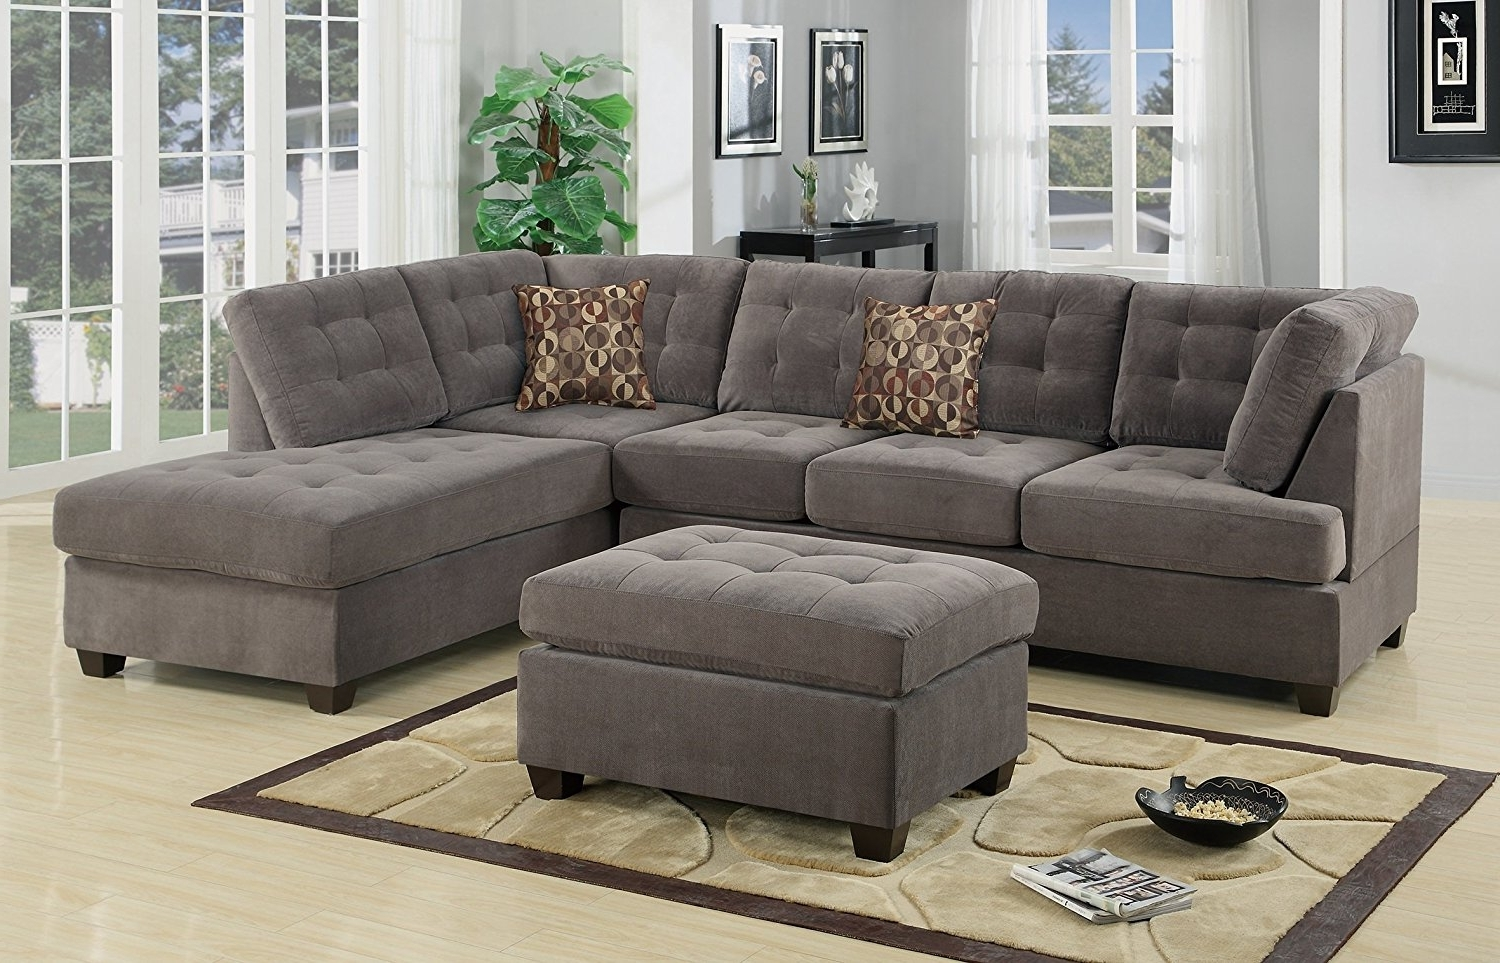 Trendy Amazon: Odessa Reversible Sectional Sofa Set With Ottoman Intended For Reversible Chaise Sectionals (View 15 of 15)